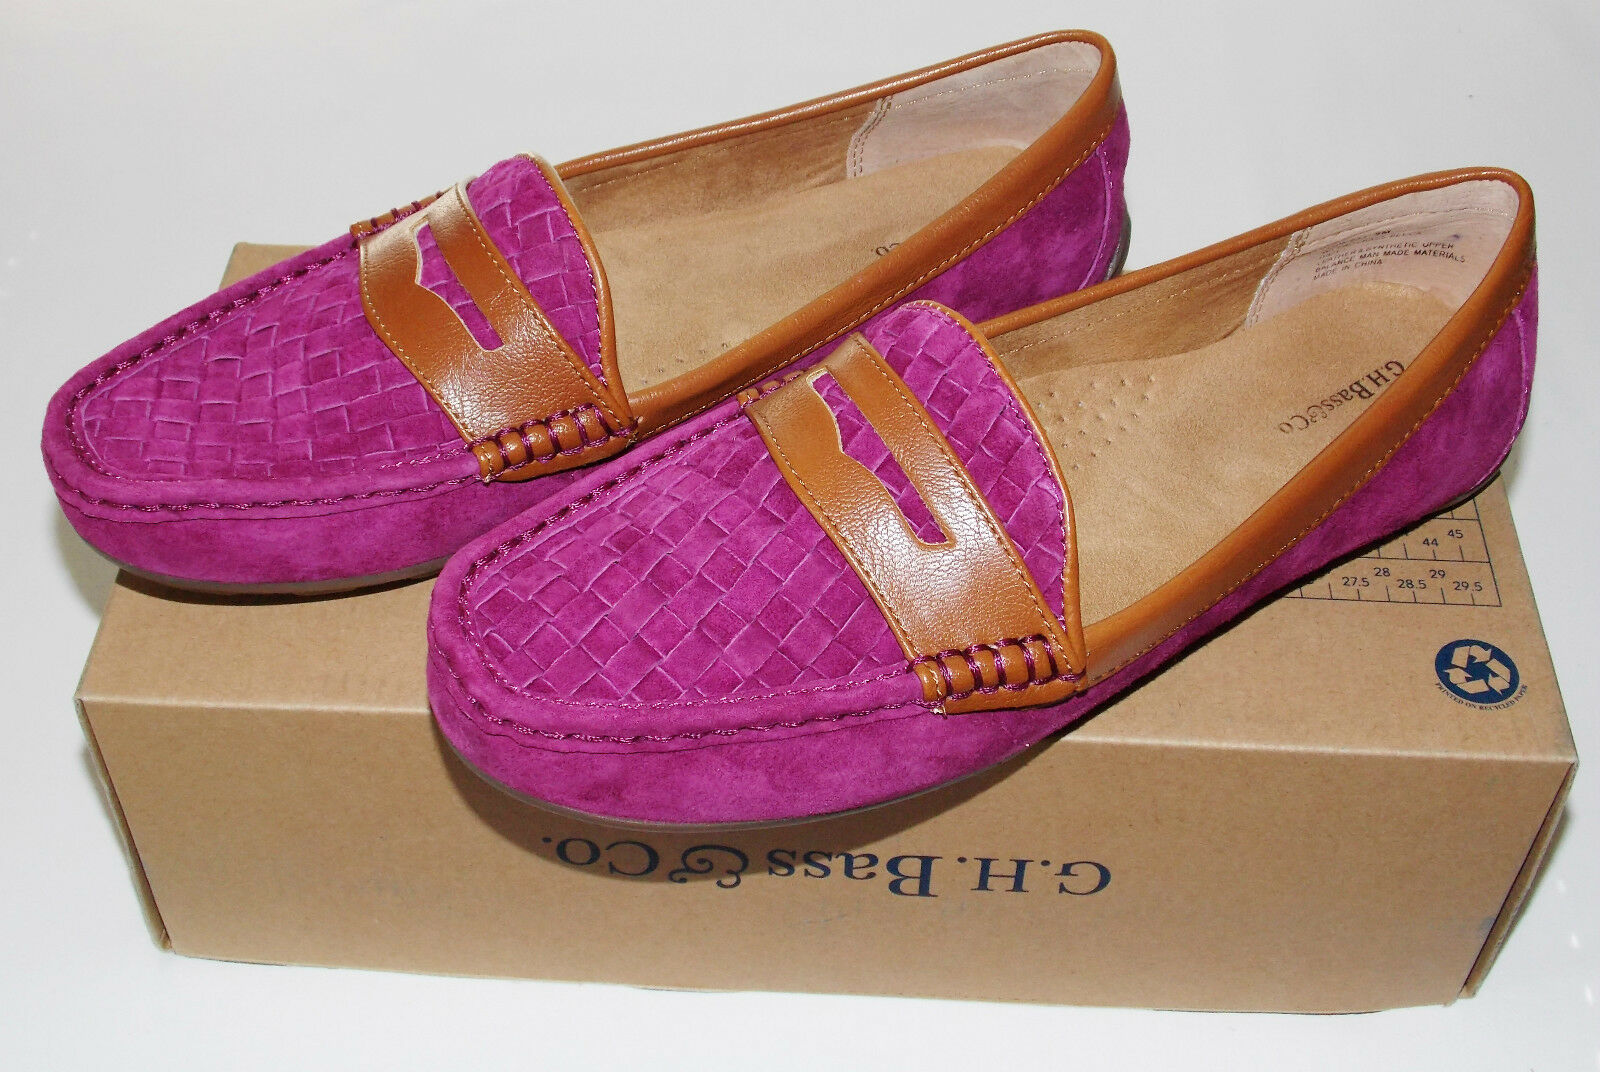 NWB G.H. Bass Suede & Co. Becca Loafers Schuhes 9 M Suede Bass Leder & Synthetic Up Magenta b5caf7